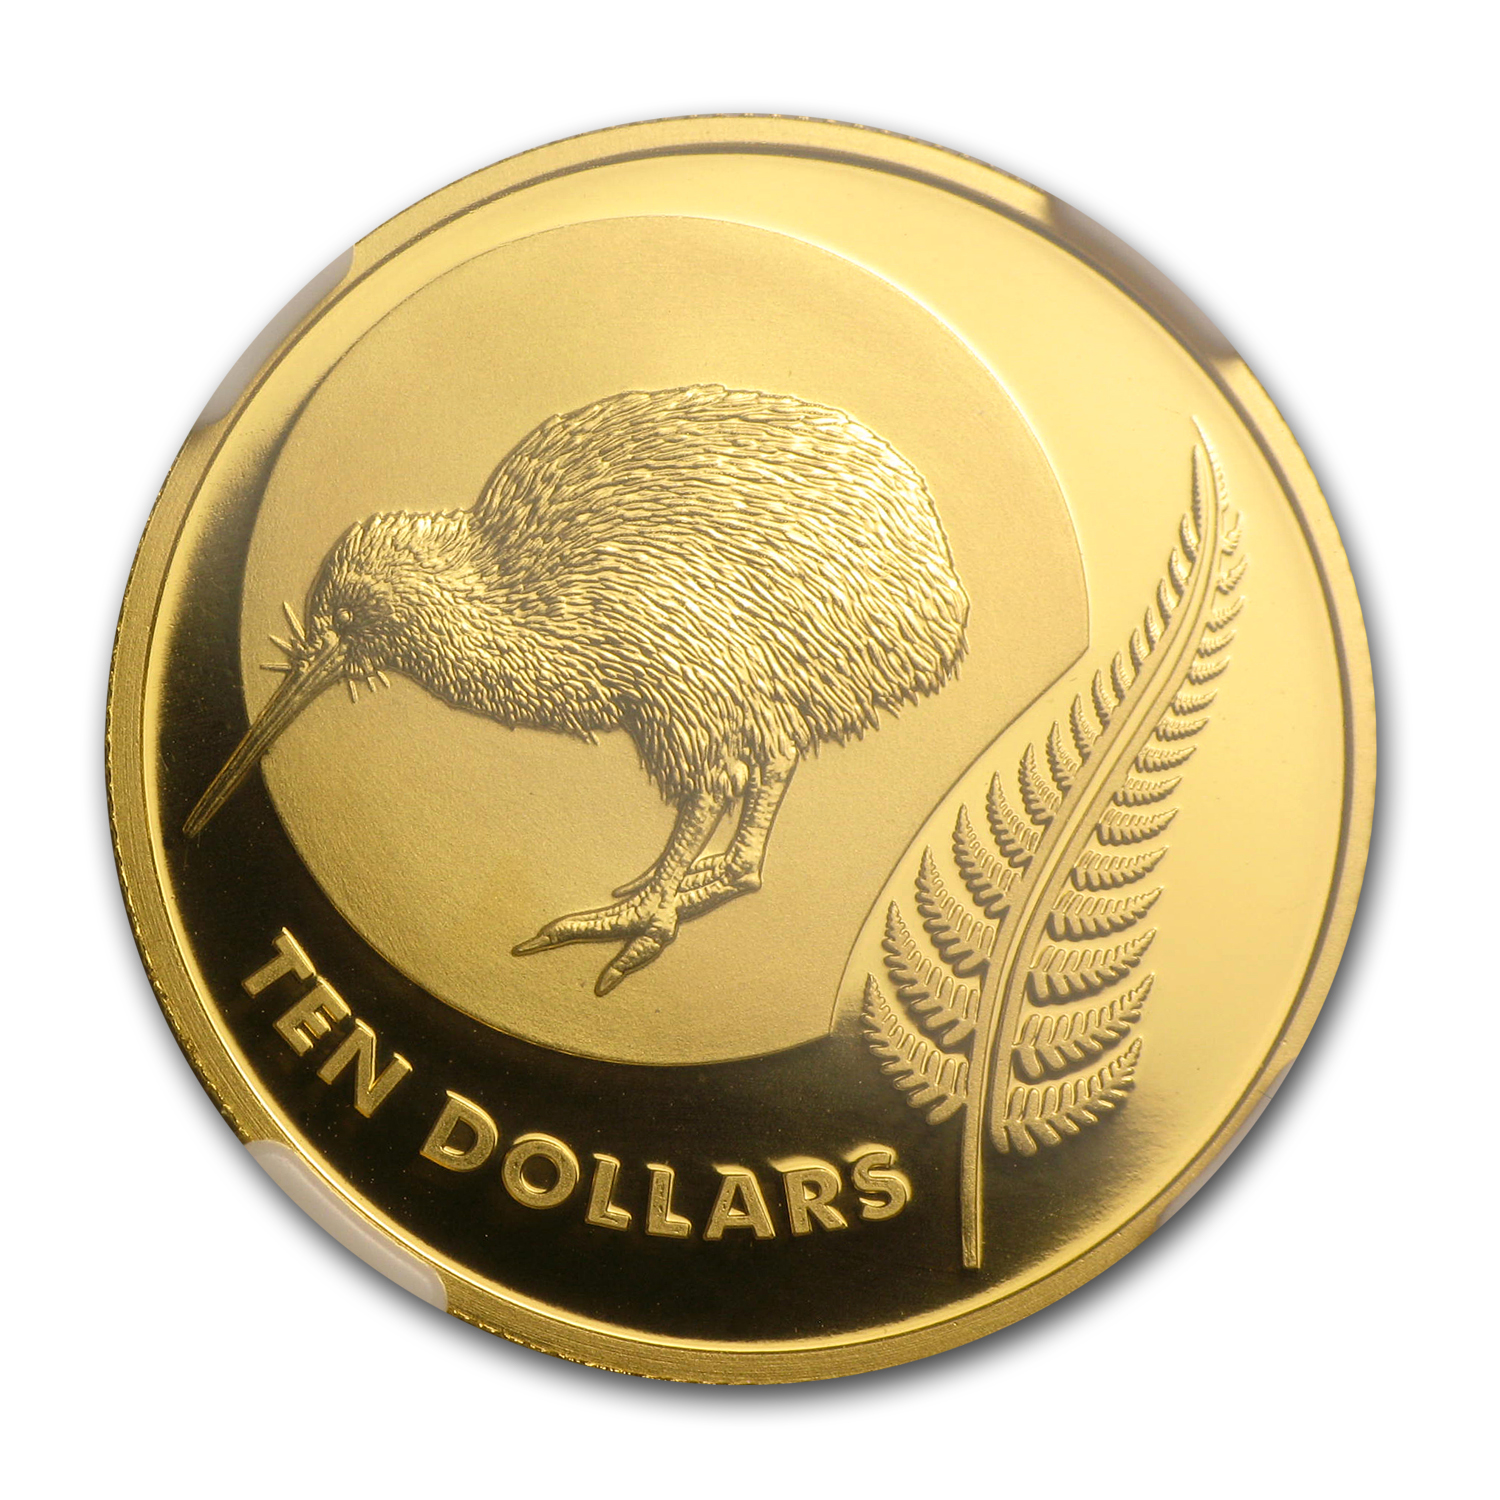 2011 1/4 oz Gold New Zealand Kiwi Icon $10 PF-69 NGC